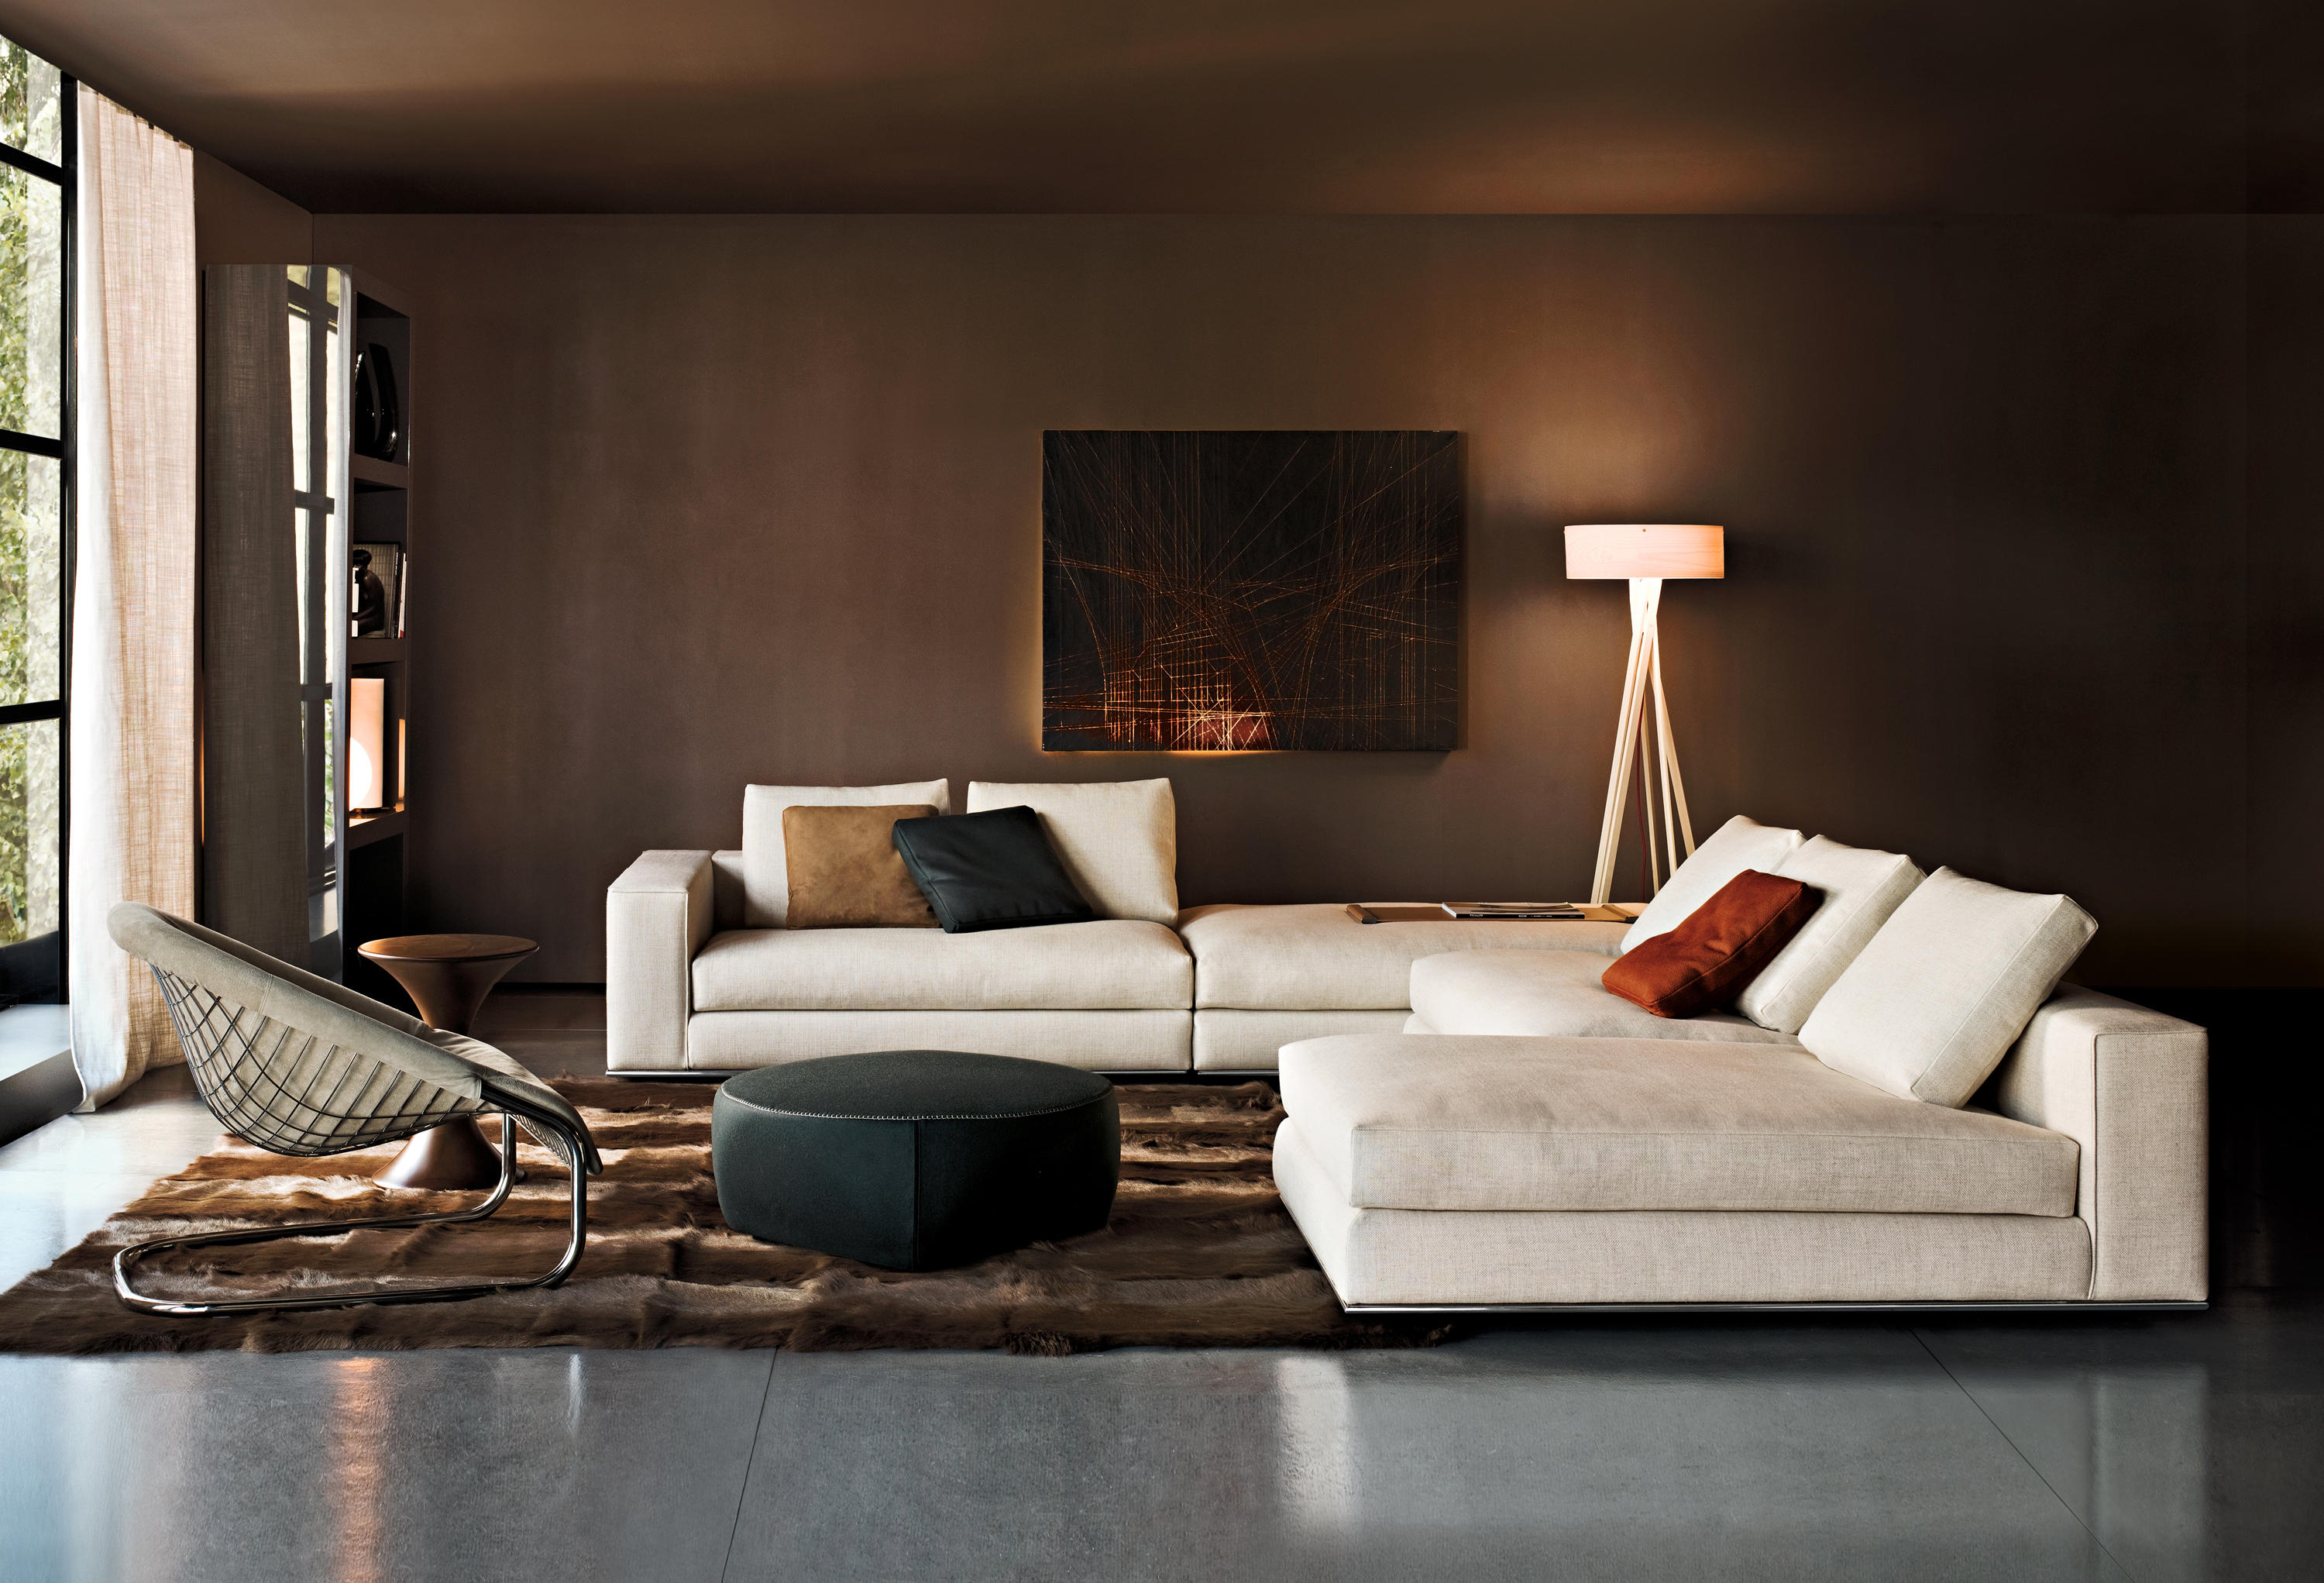 Superb Hamilton Sofas From Minotti Architonic Caraccident5 Cool Chair Designs And Ideas Caraccident5Info